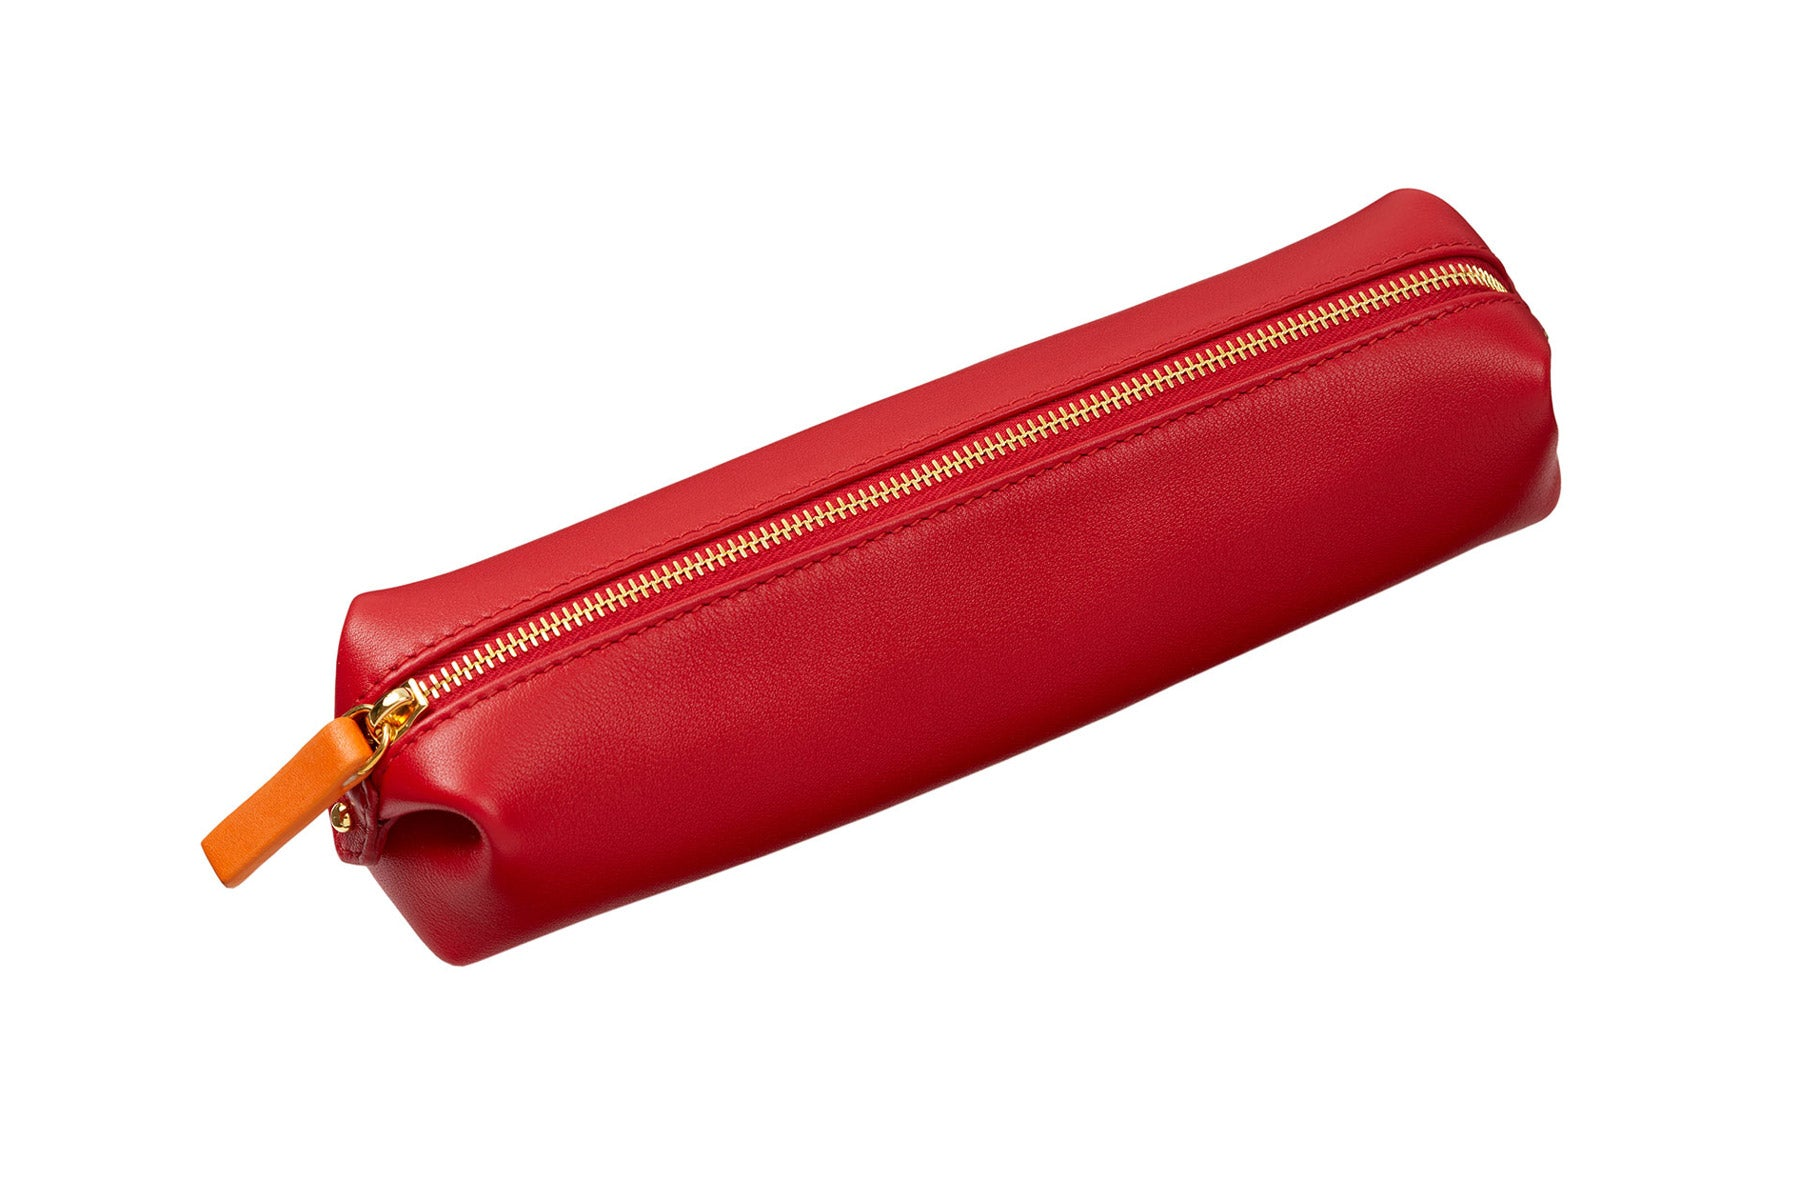 STOW Red Leather Pencil Case